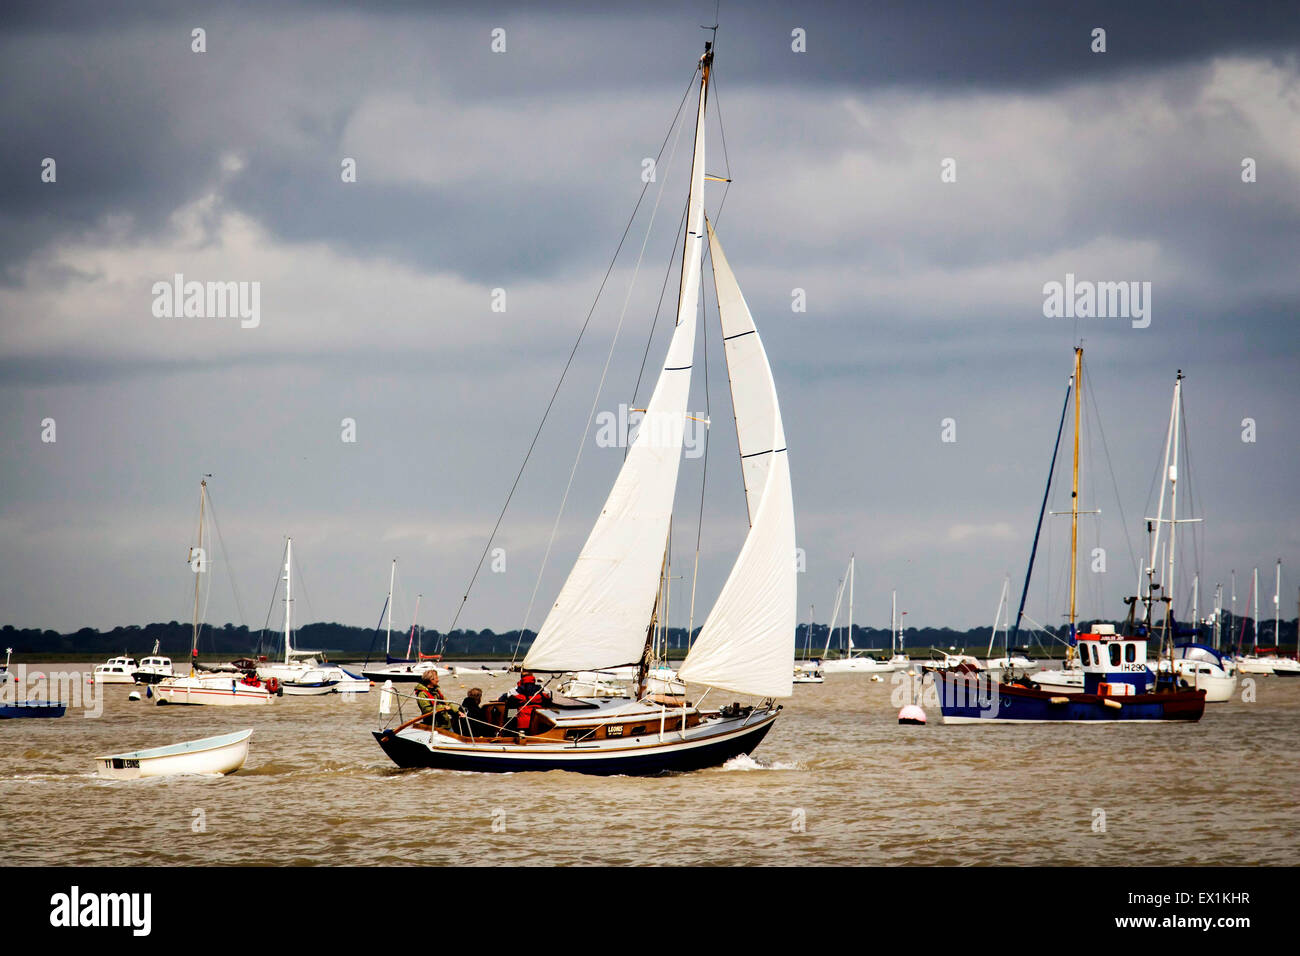 Yacht navigating the river at speed - Stock Image